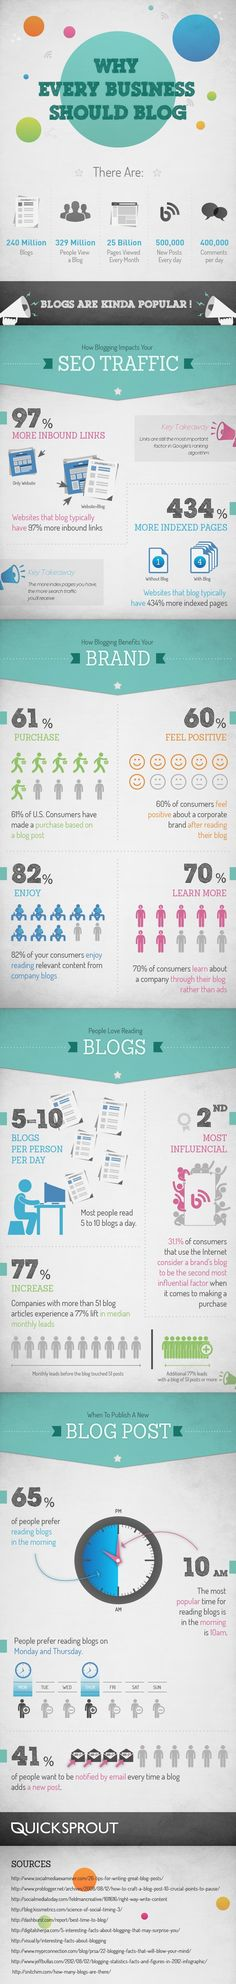 Why Every Business Should #Blog - #infographic #blogging #Business